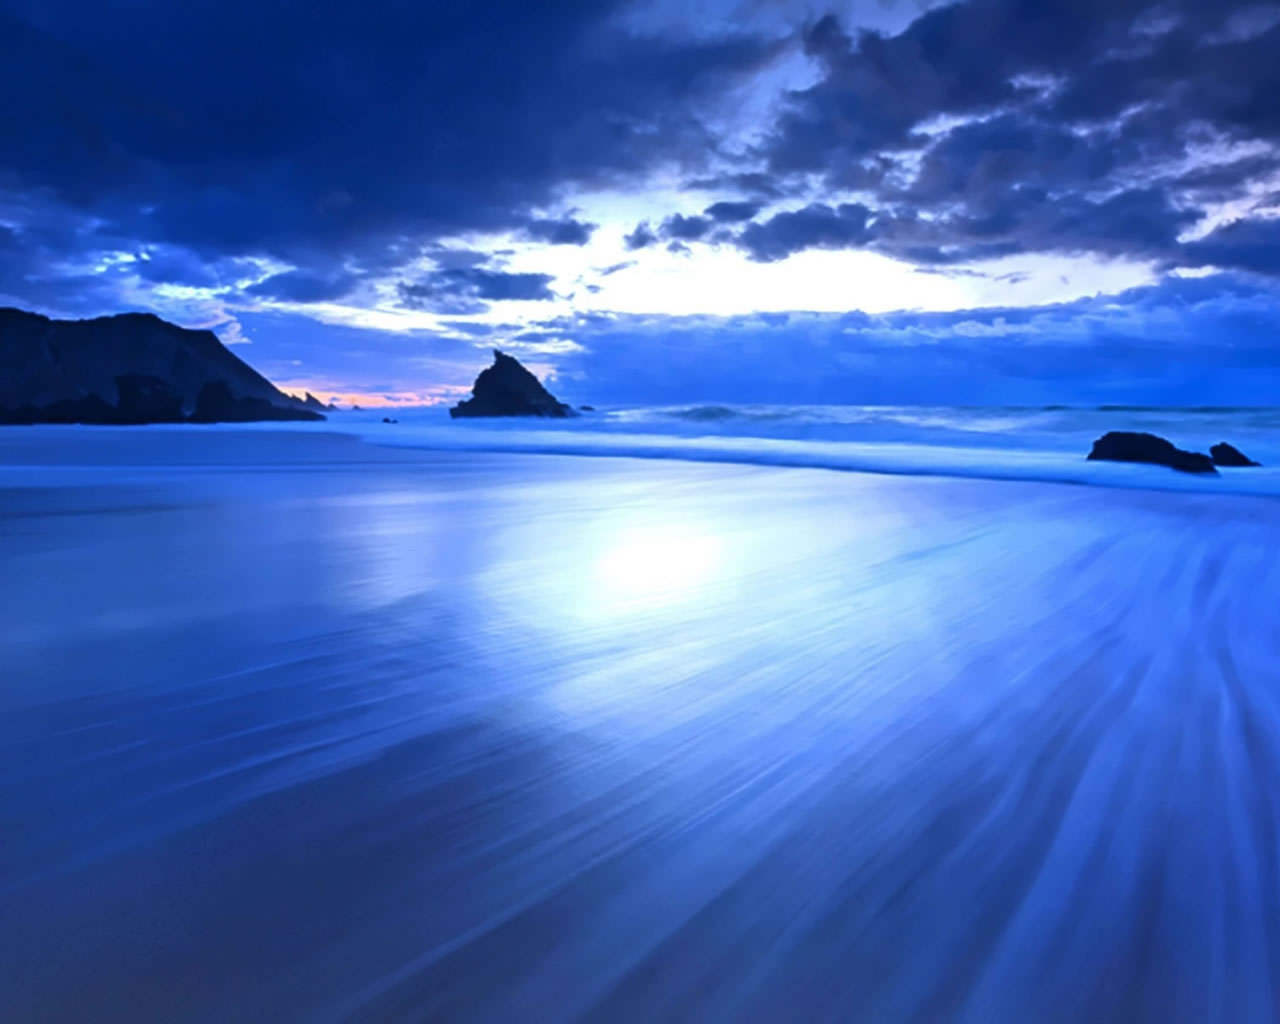 Pin Ocean Scene Wallpaper 1280x1024